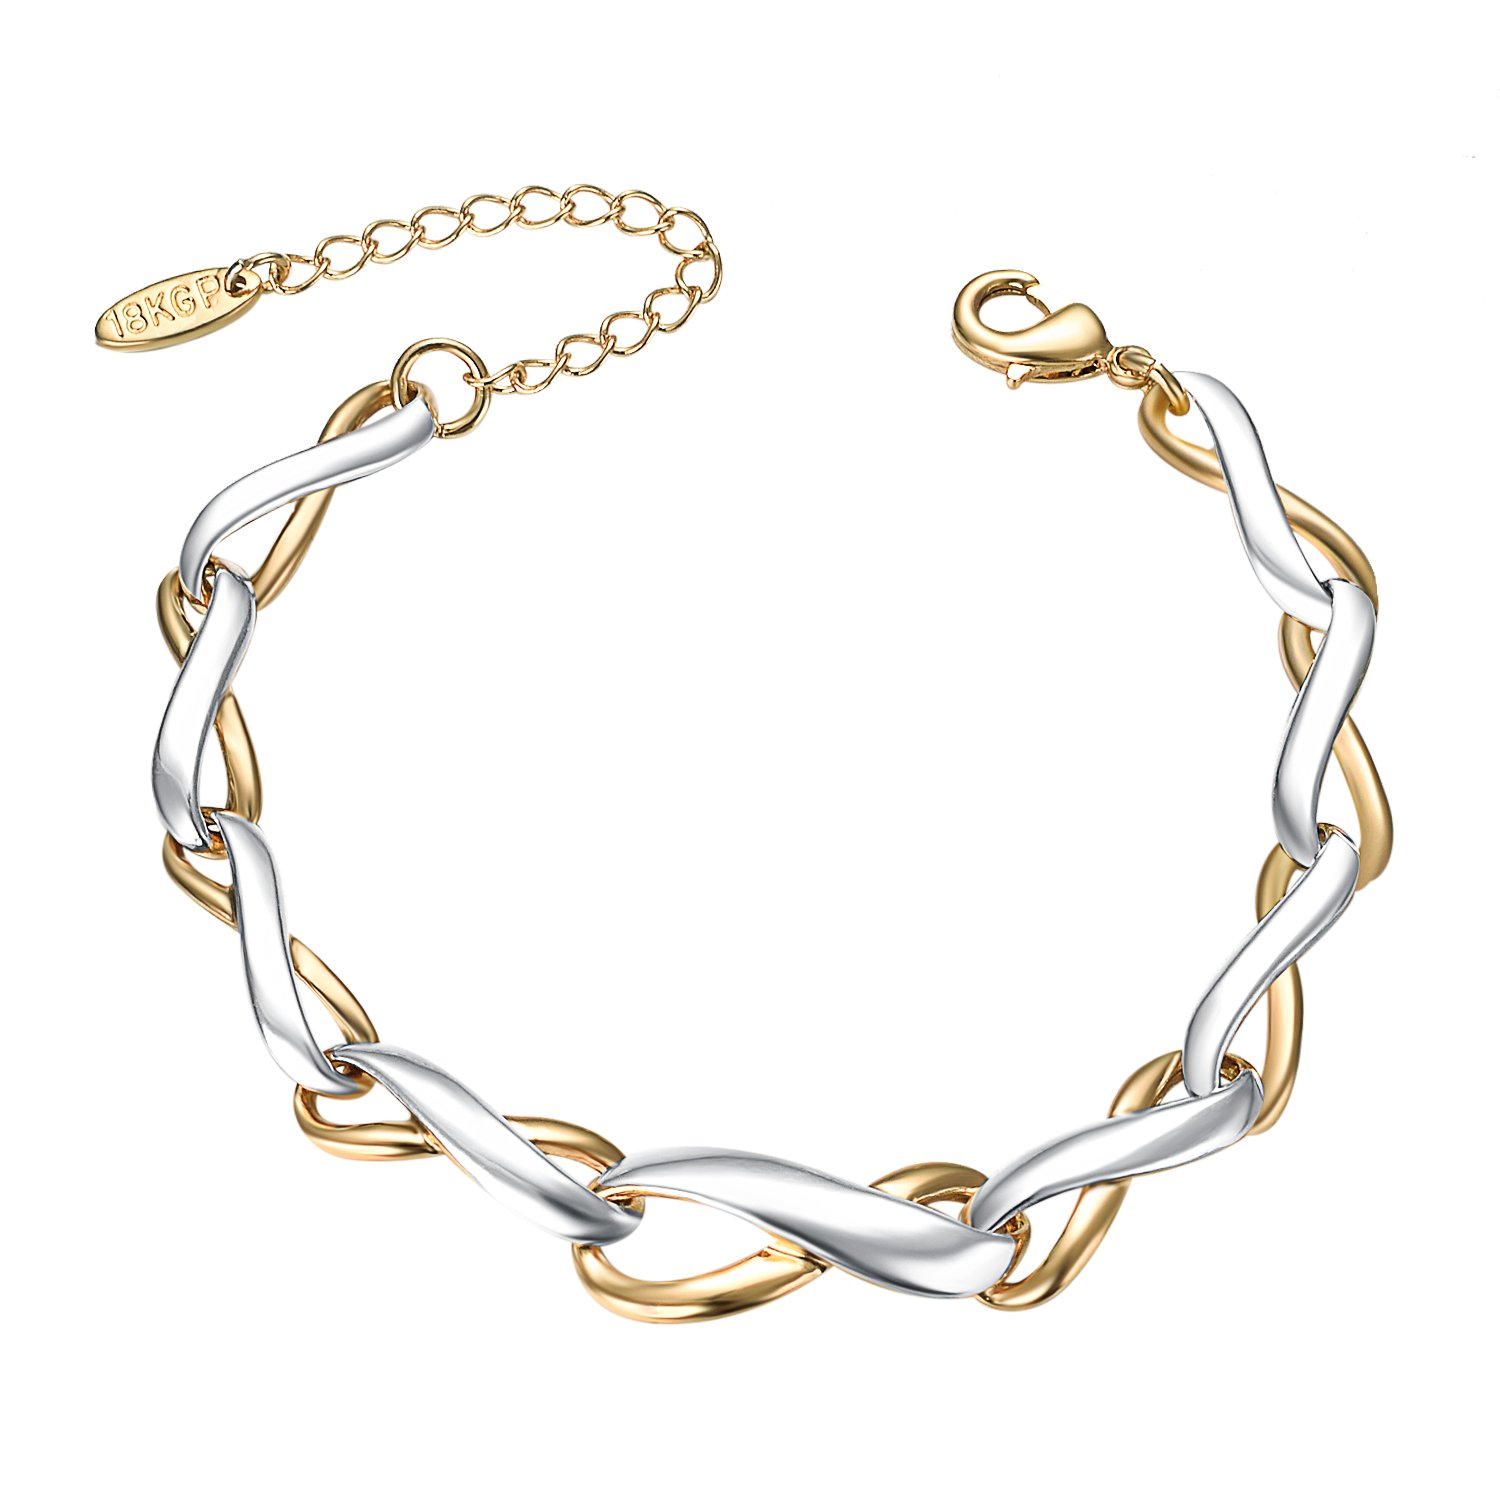 Yoursfs Infinity Link Bracelet Two-Tone Gold Plated Infinity Tennis Link Bracelet for Women